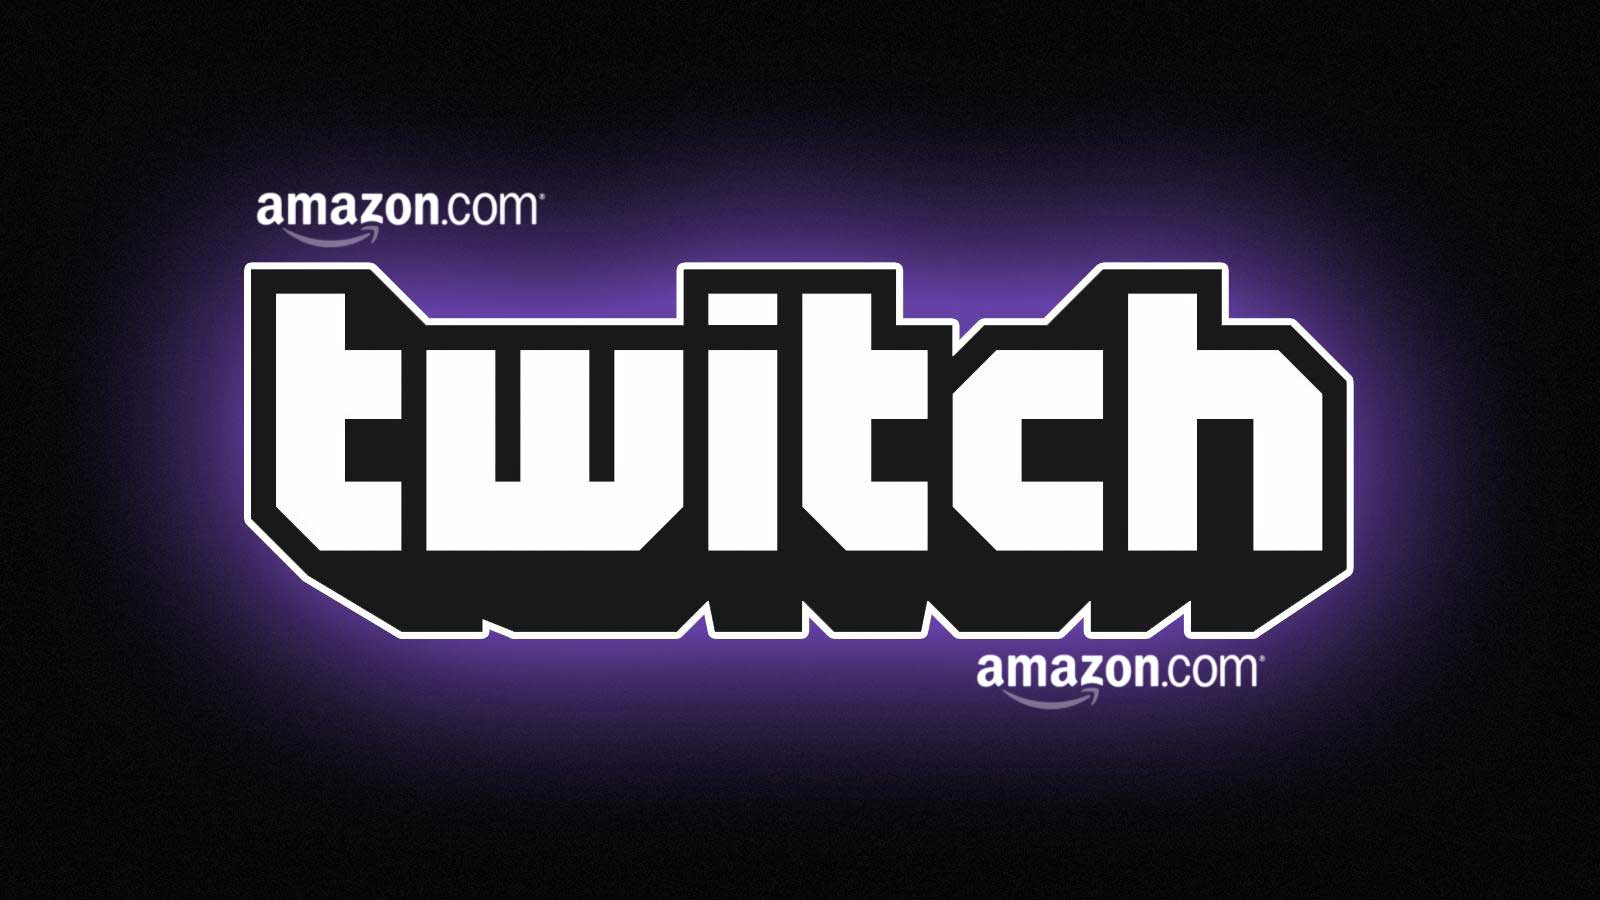 Amazon-Buys-Twitch-997-million-dollars-google-gets-the-boot